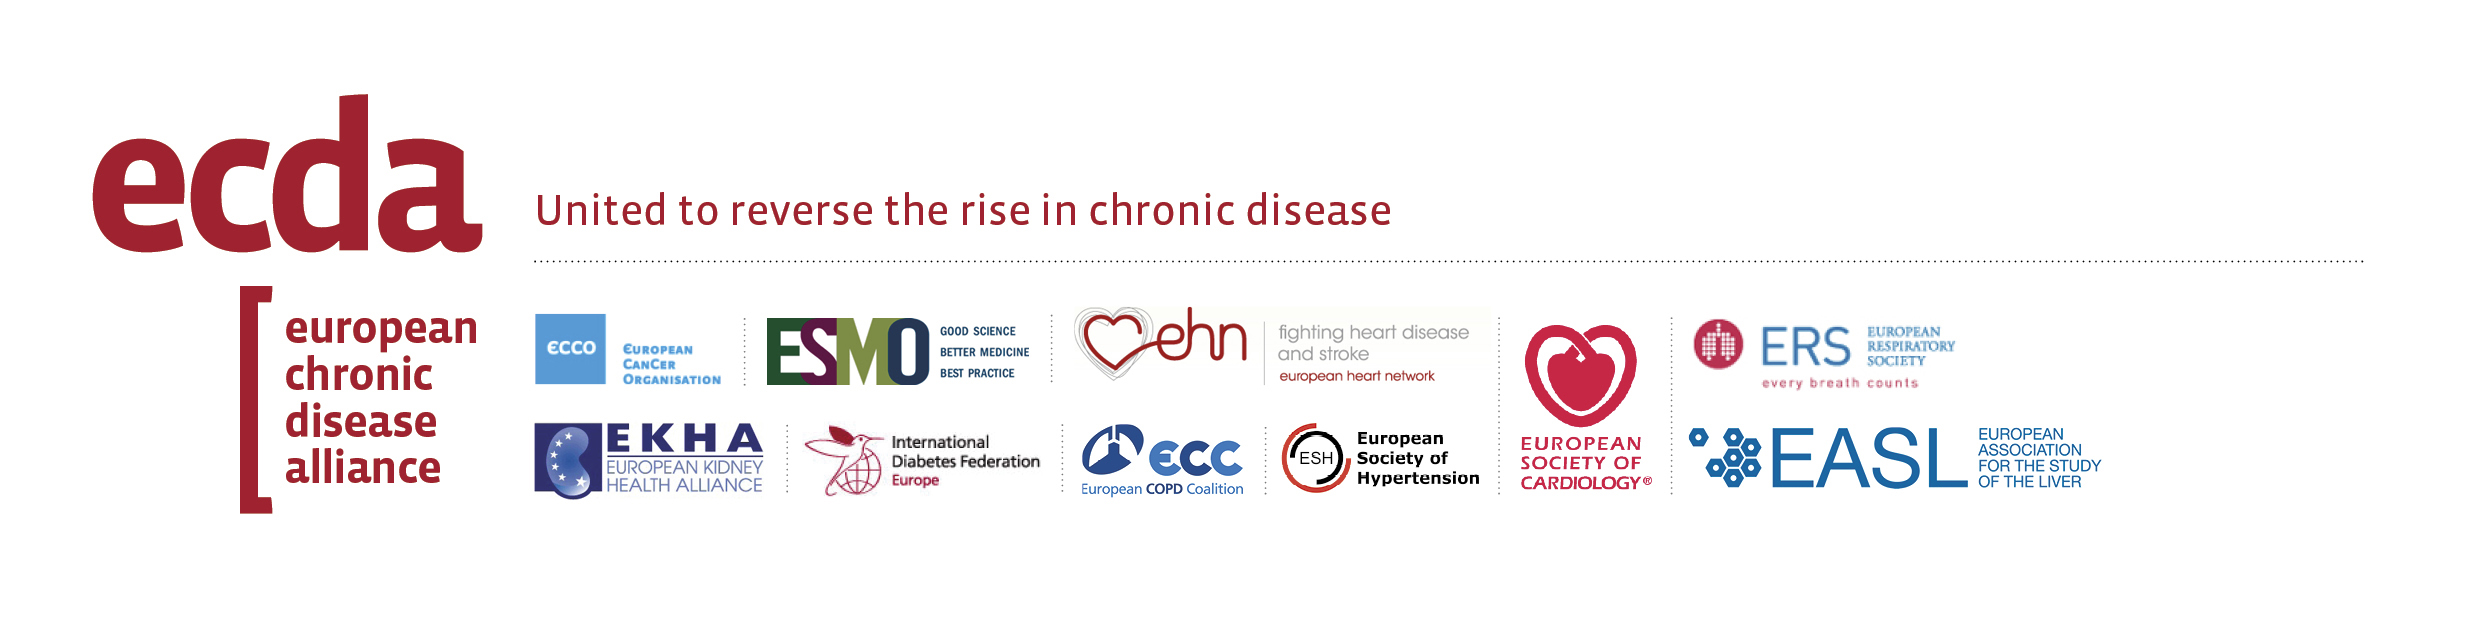 European Chronic Disease Alliance banner